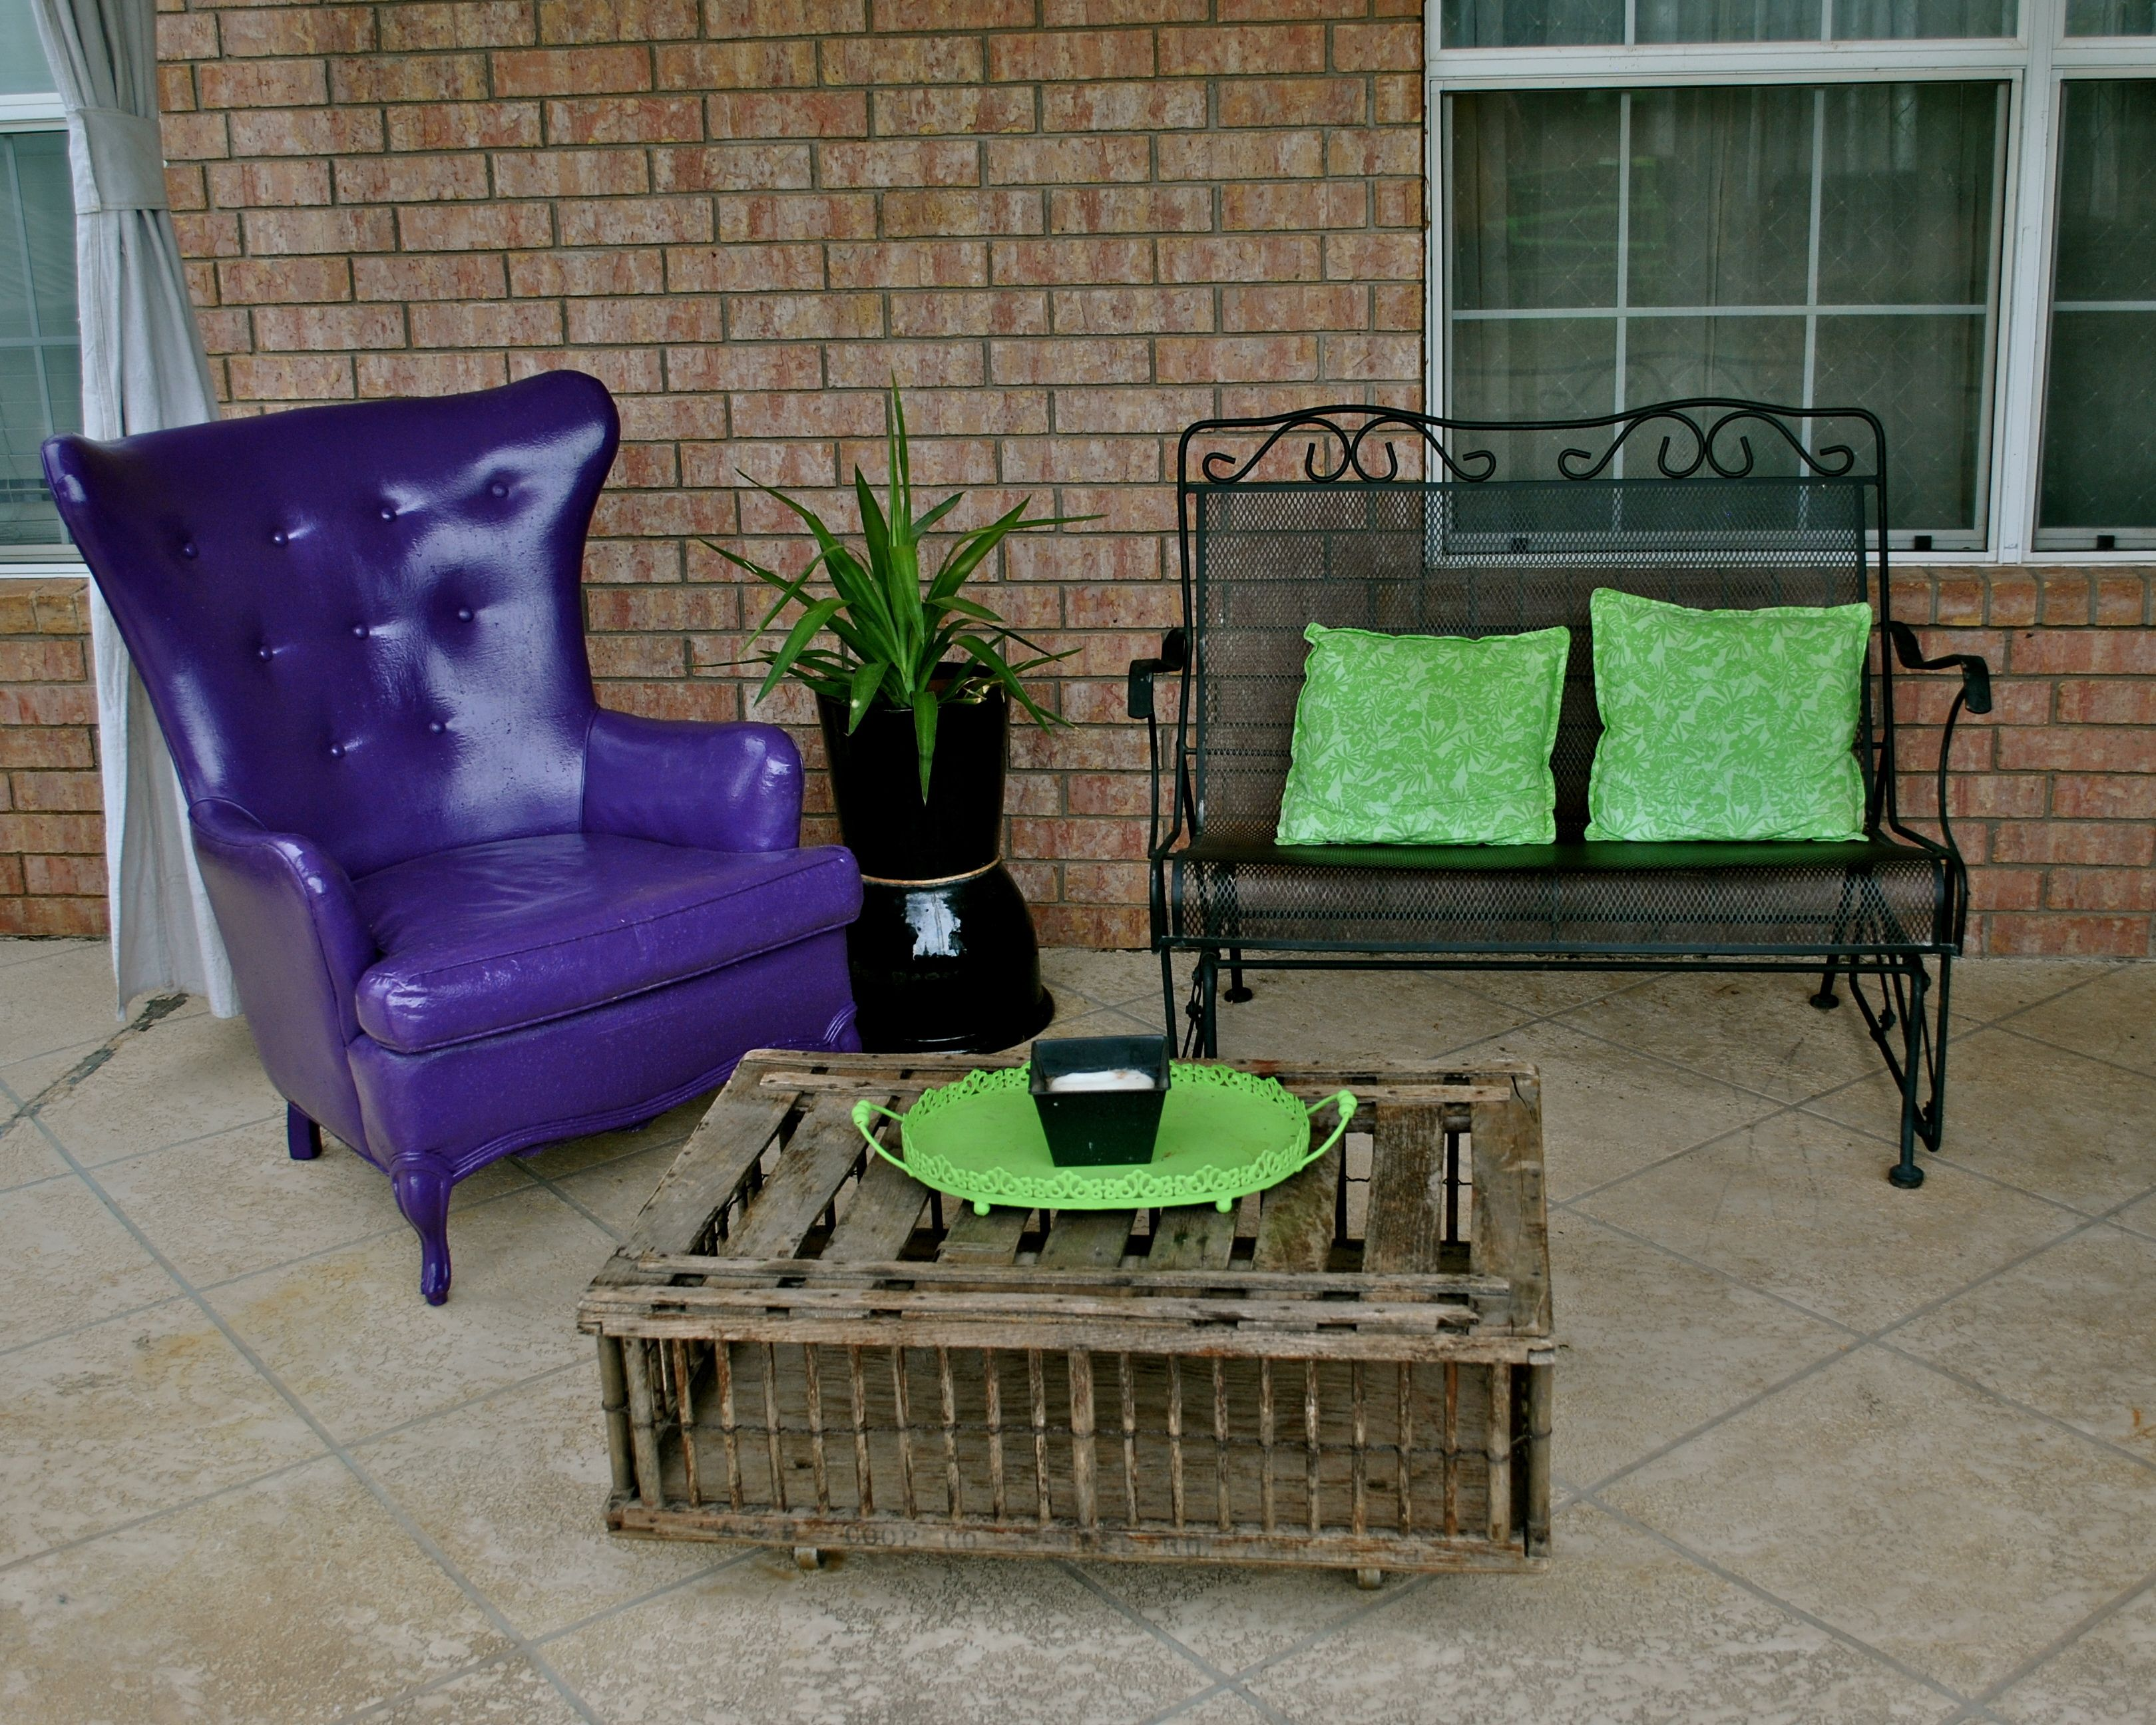 Oil Based Outdoor Paint To Cover Cloth Chair Pleather Type Water Proof Outdoor Chair Home Decor Furniture Diy Painting Furniture Diy